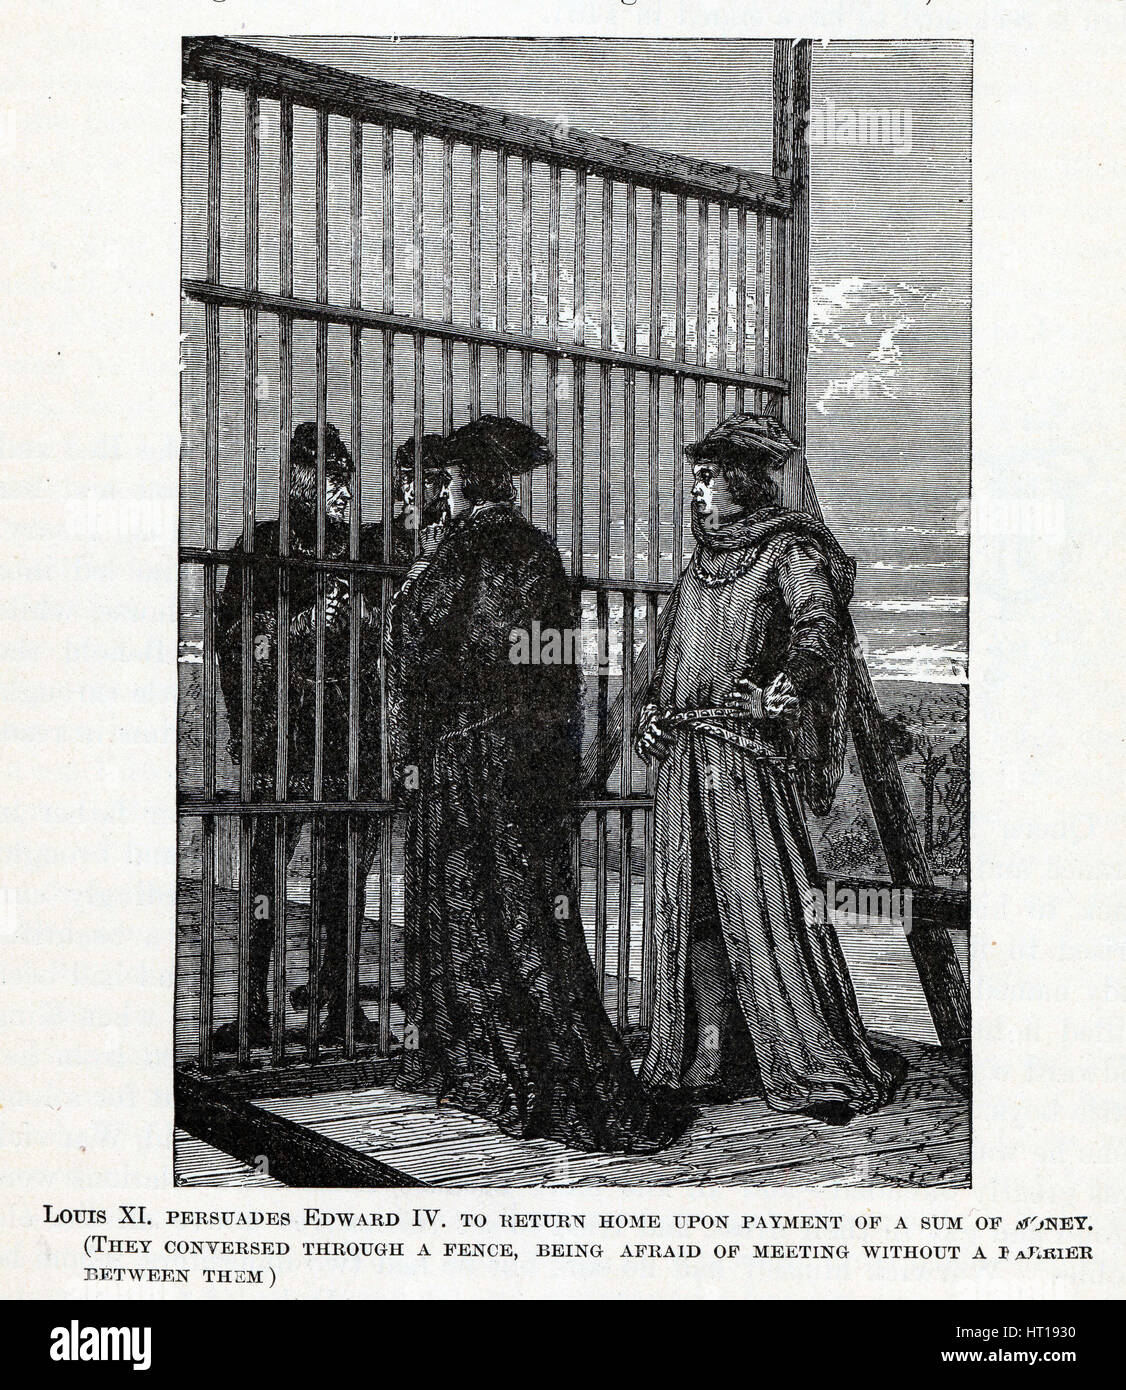 Louis XI persuades Edward IV to return home of a sum of money, 1882. Artist: Anonymous - Stock Image